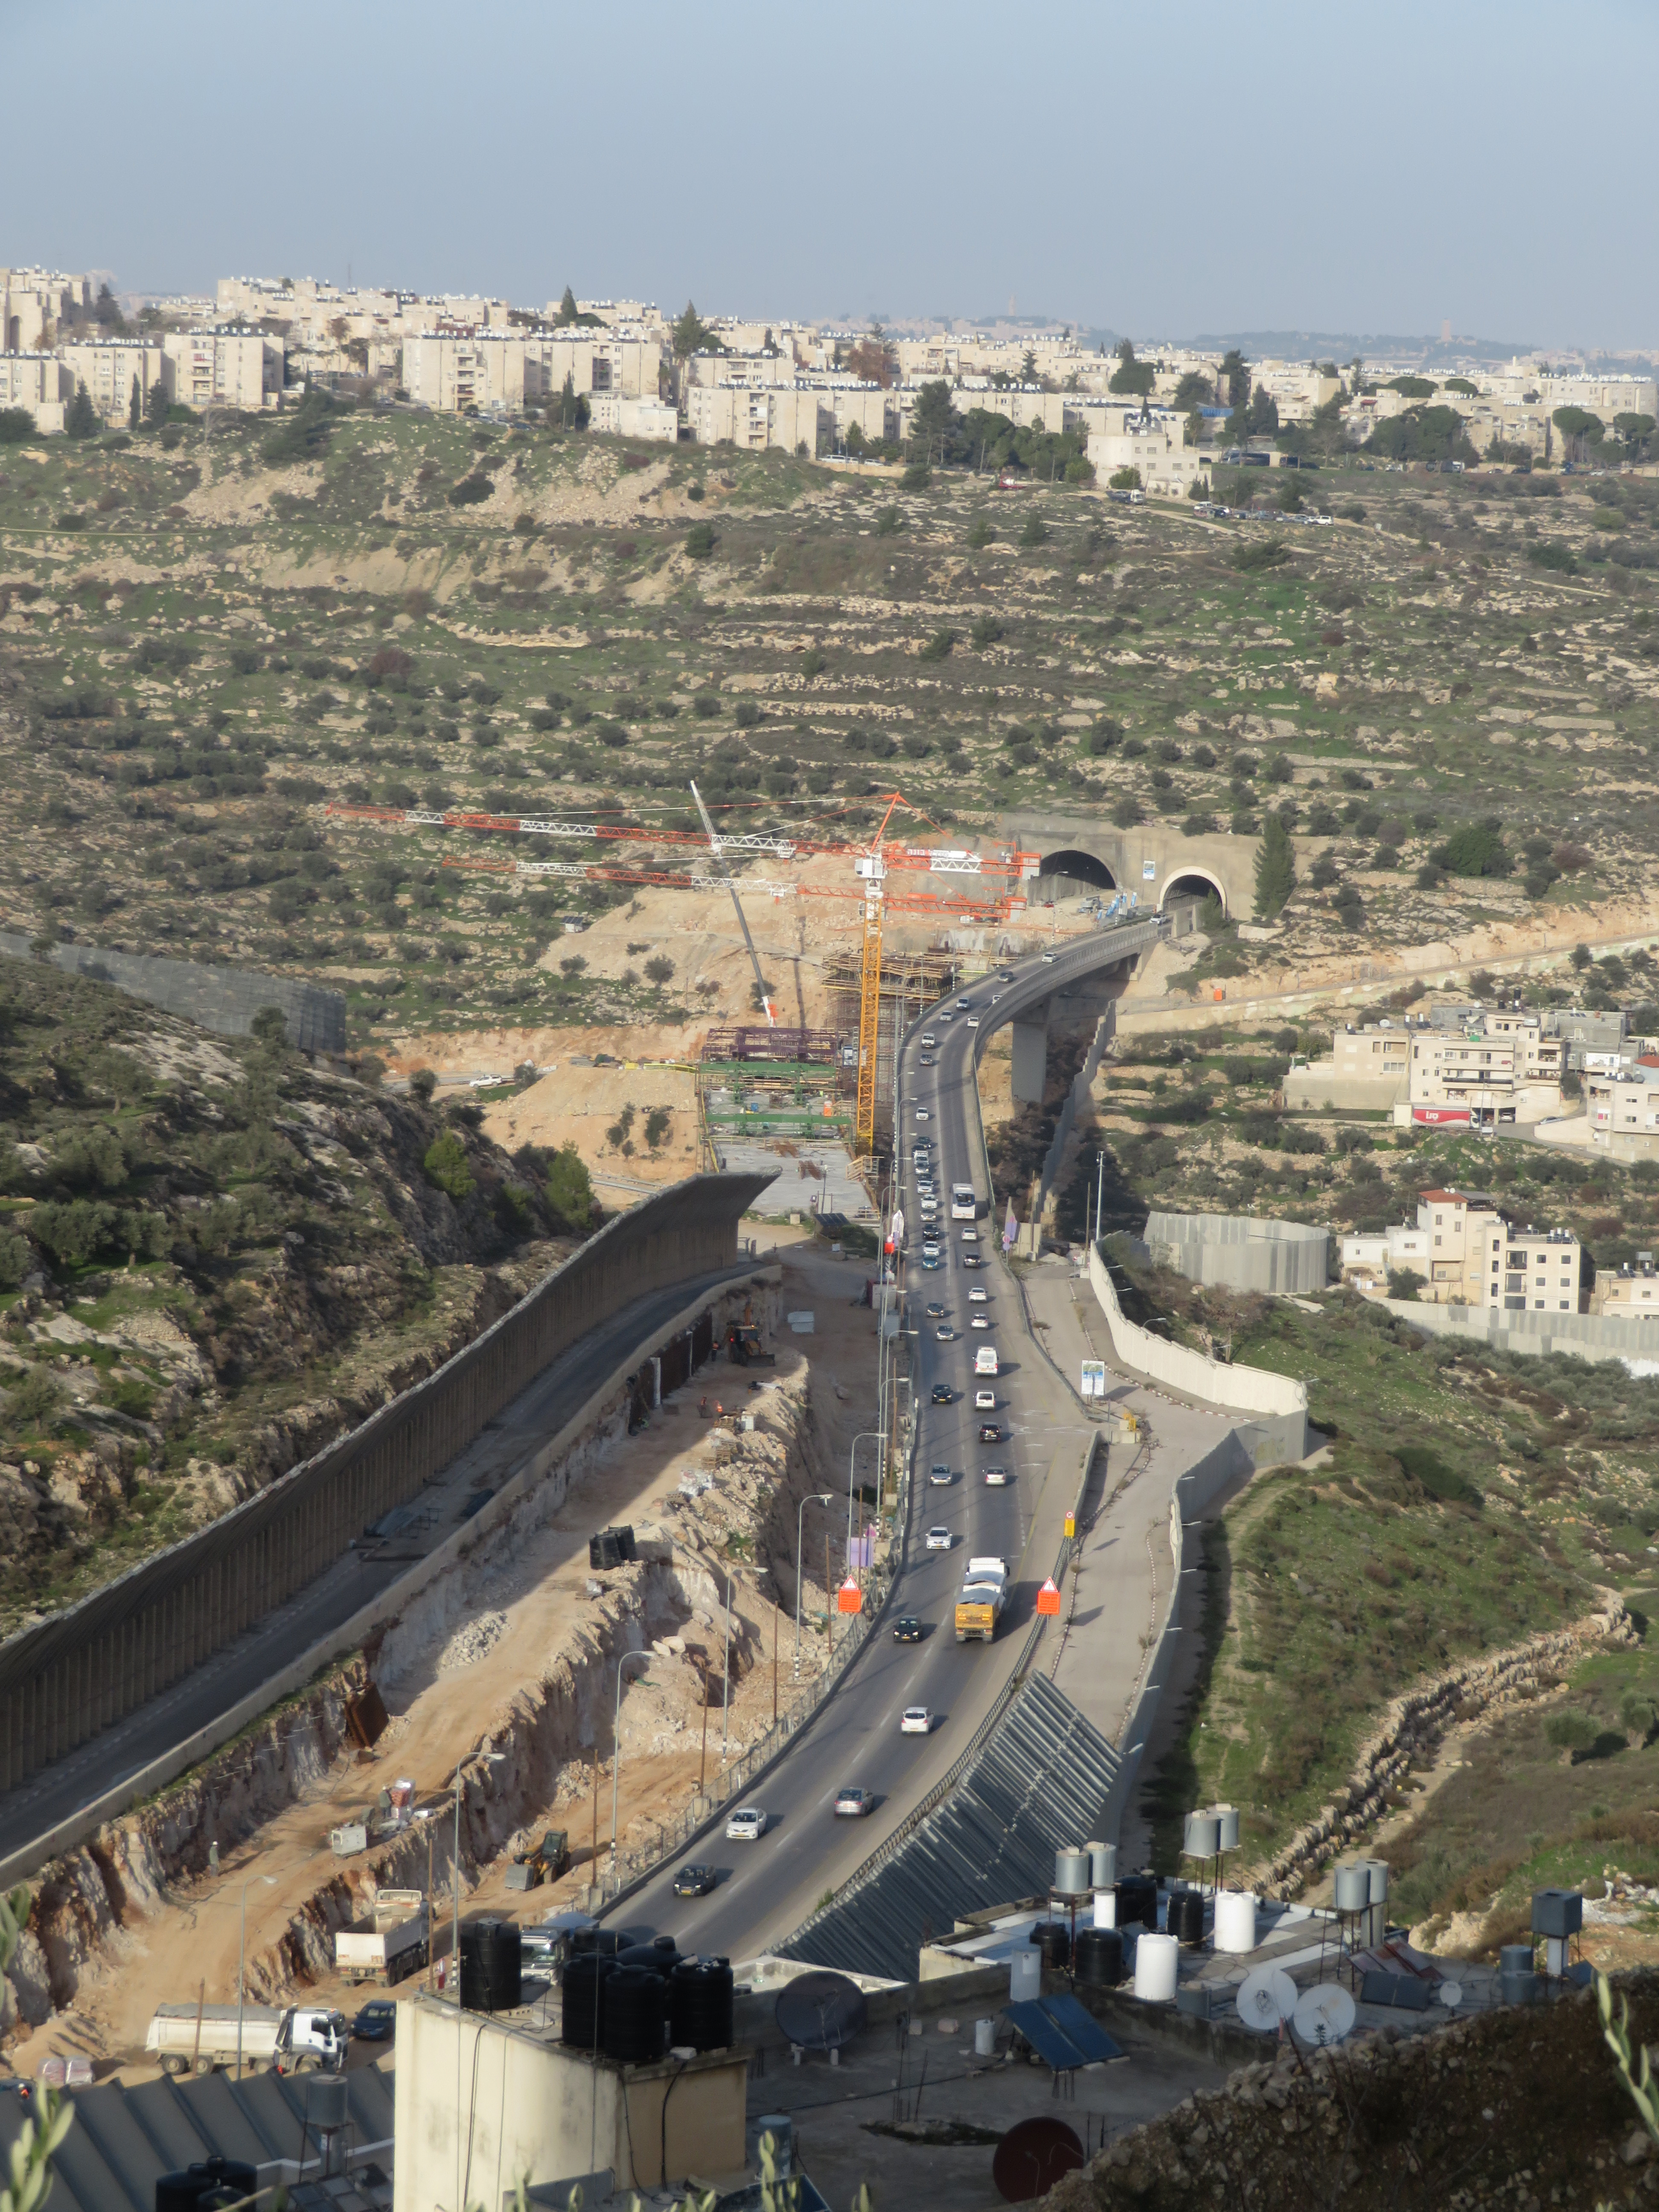 Engineering of space: A new tunnel and bridge under construction over the Cremisan Valley near Bethlehem will benefit the Israeli settler population in the southern West Bank at the expense of the Palestinian population.